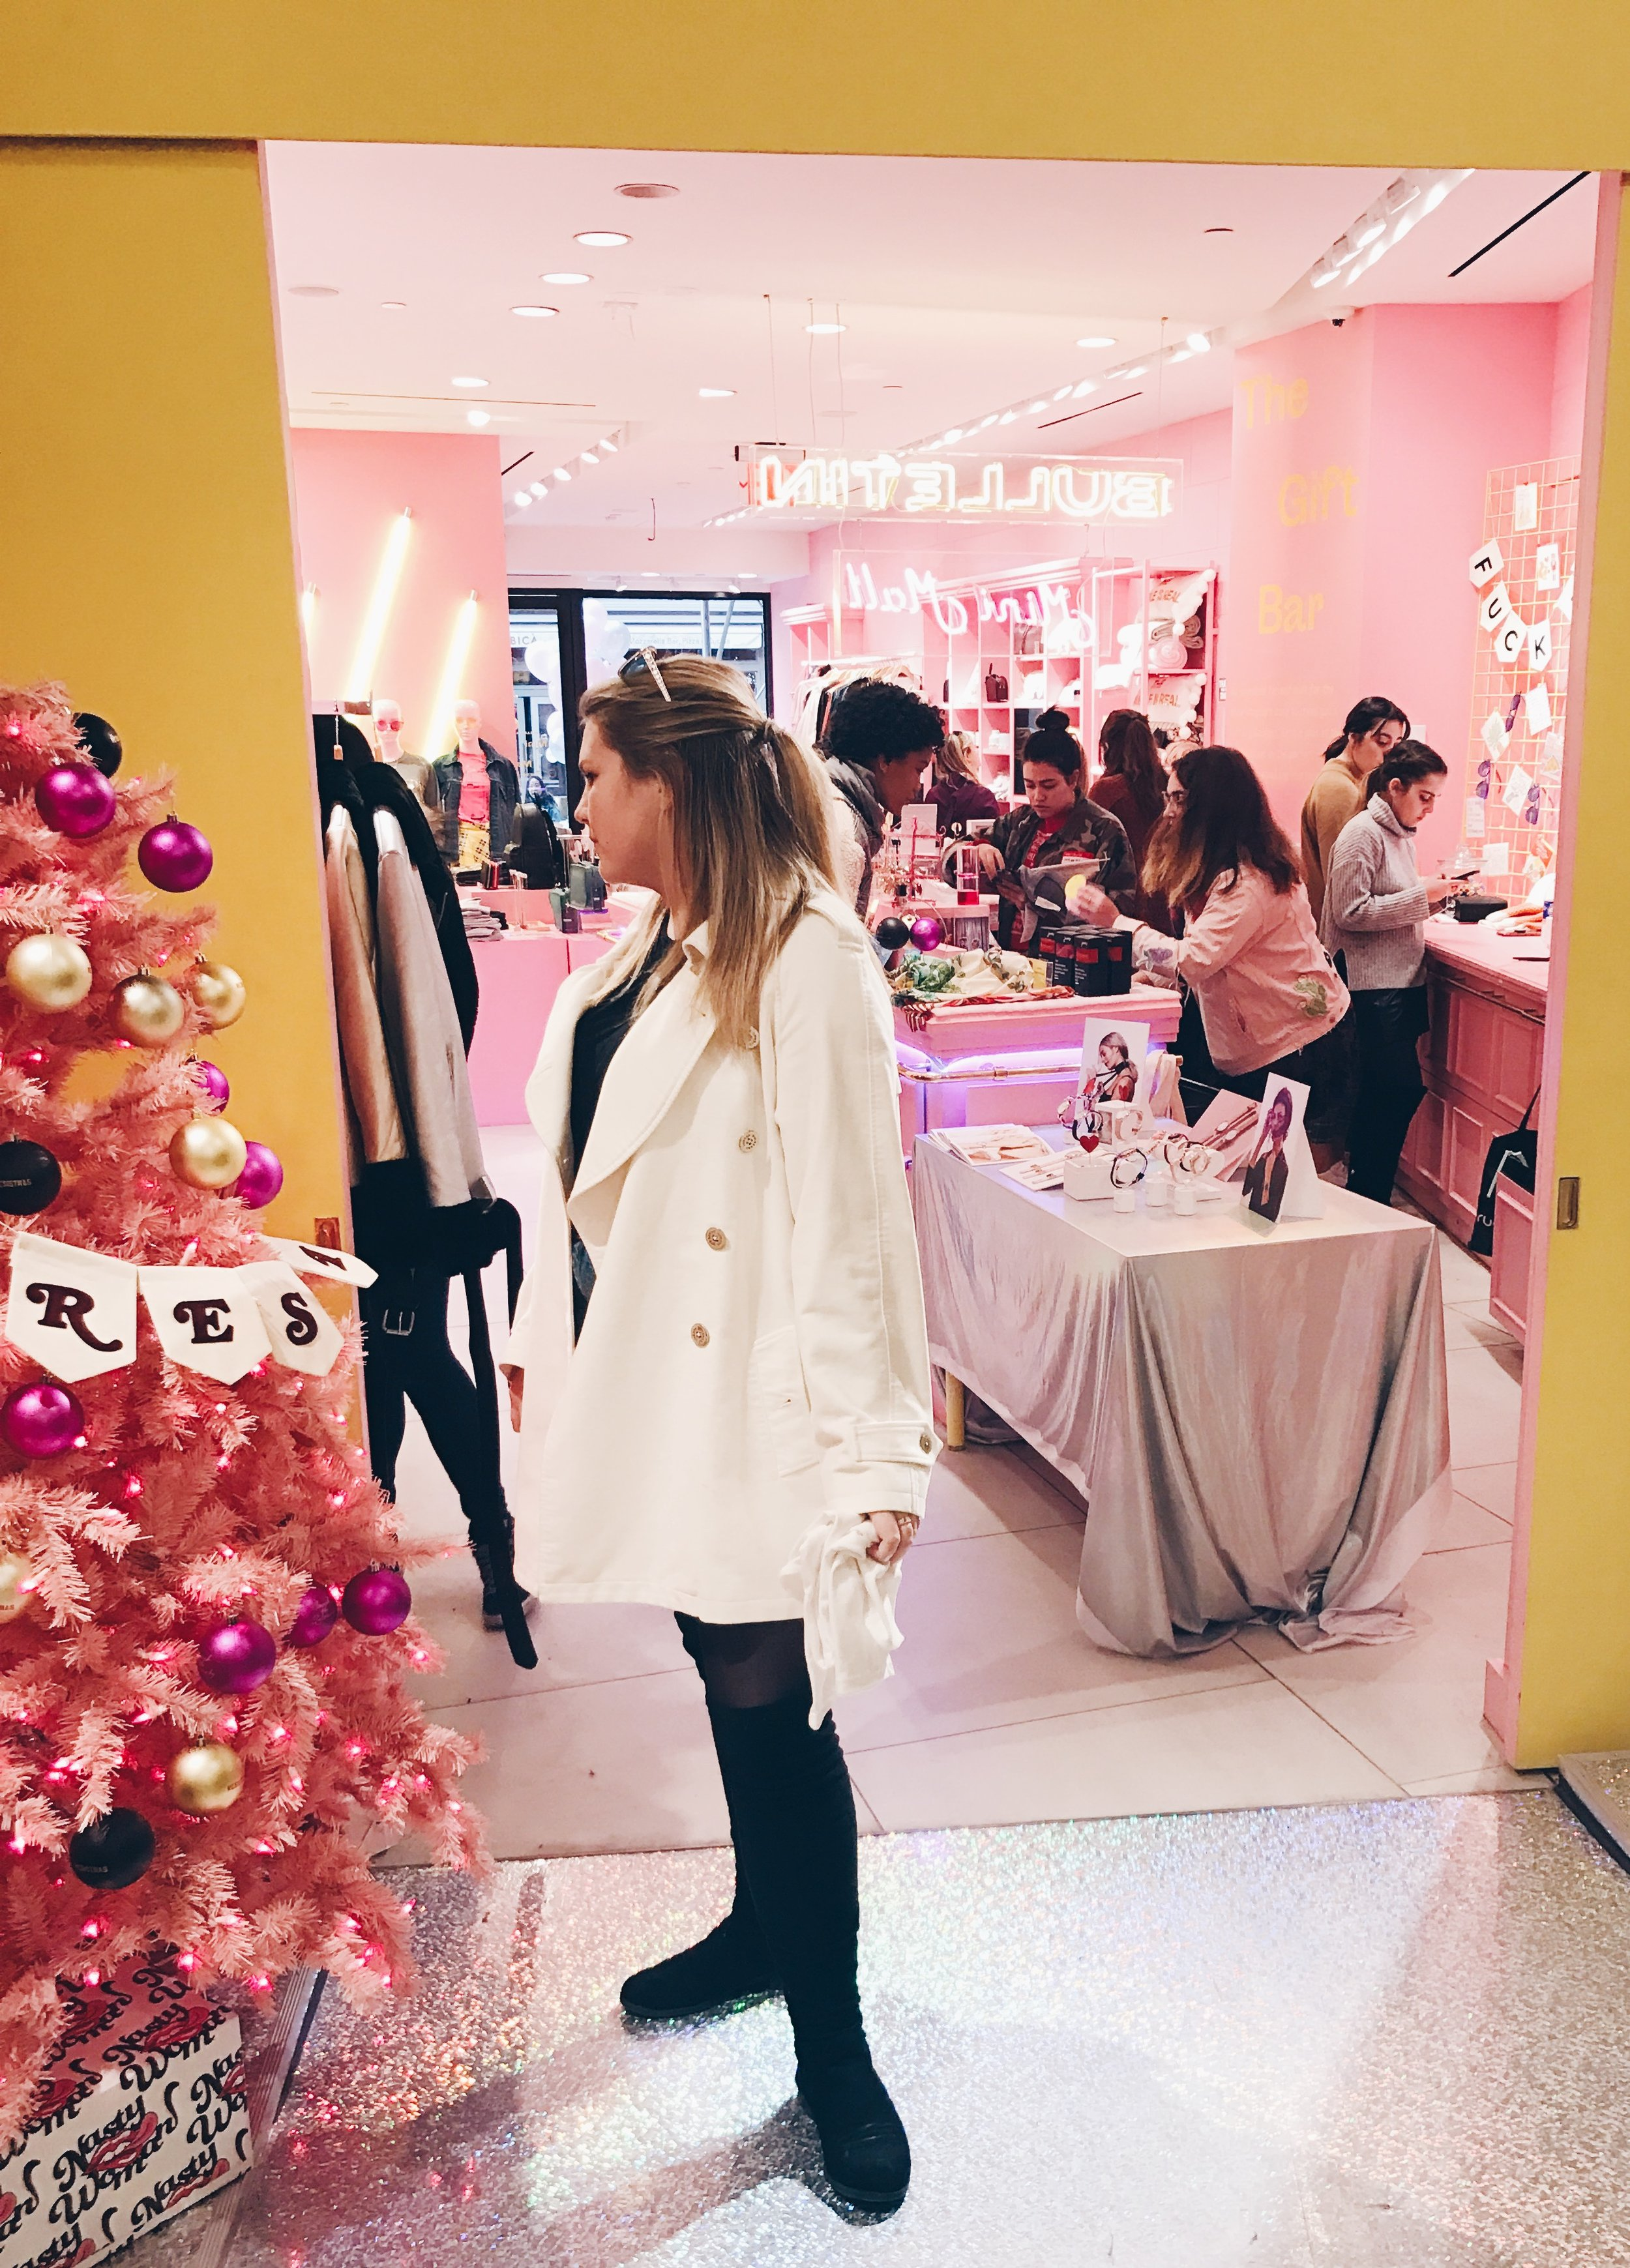 BULLETIN mini mall - Brooklyn native feminist iconically pink store comes to Flat Iron!